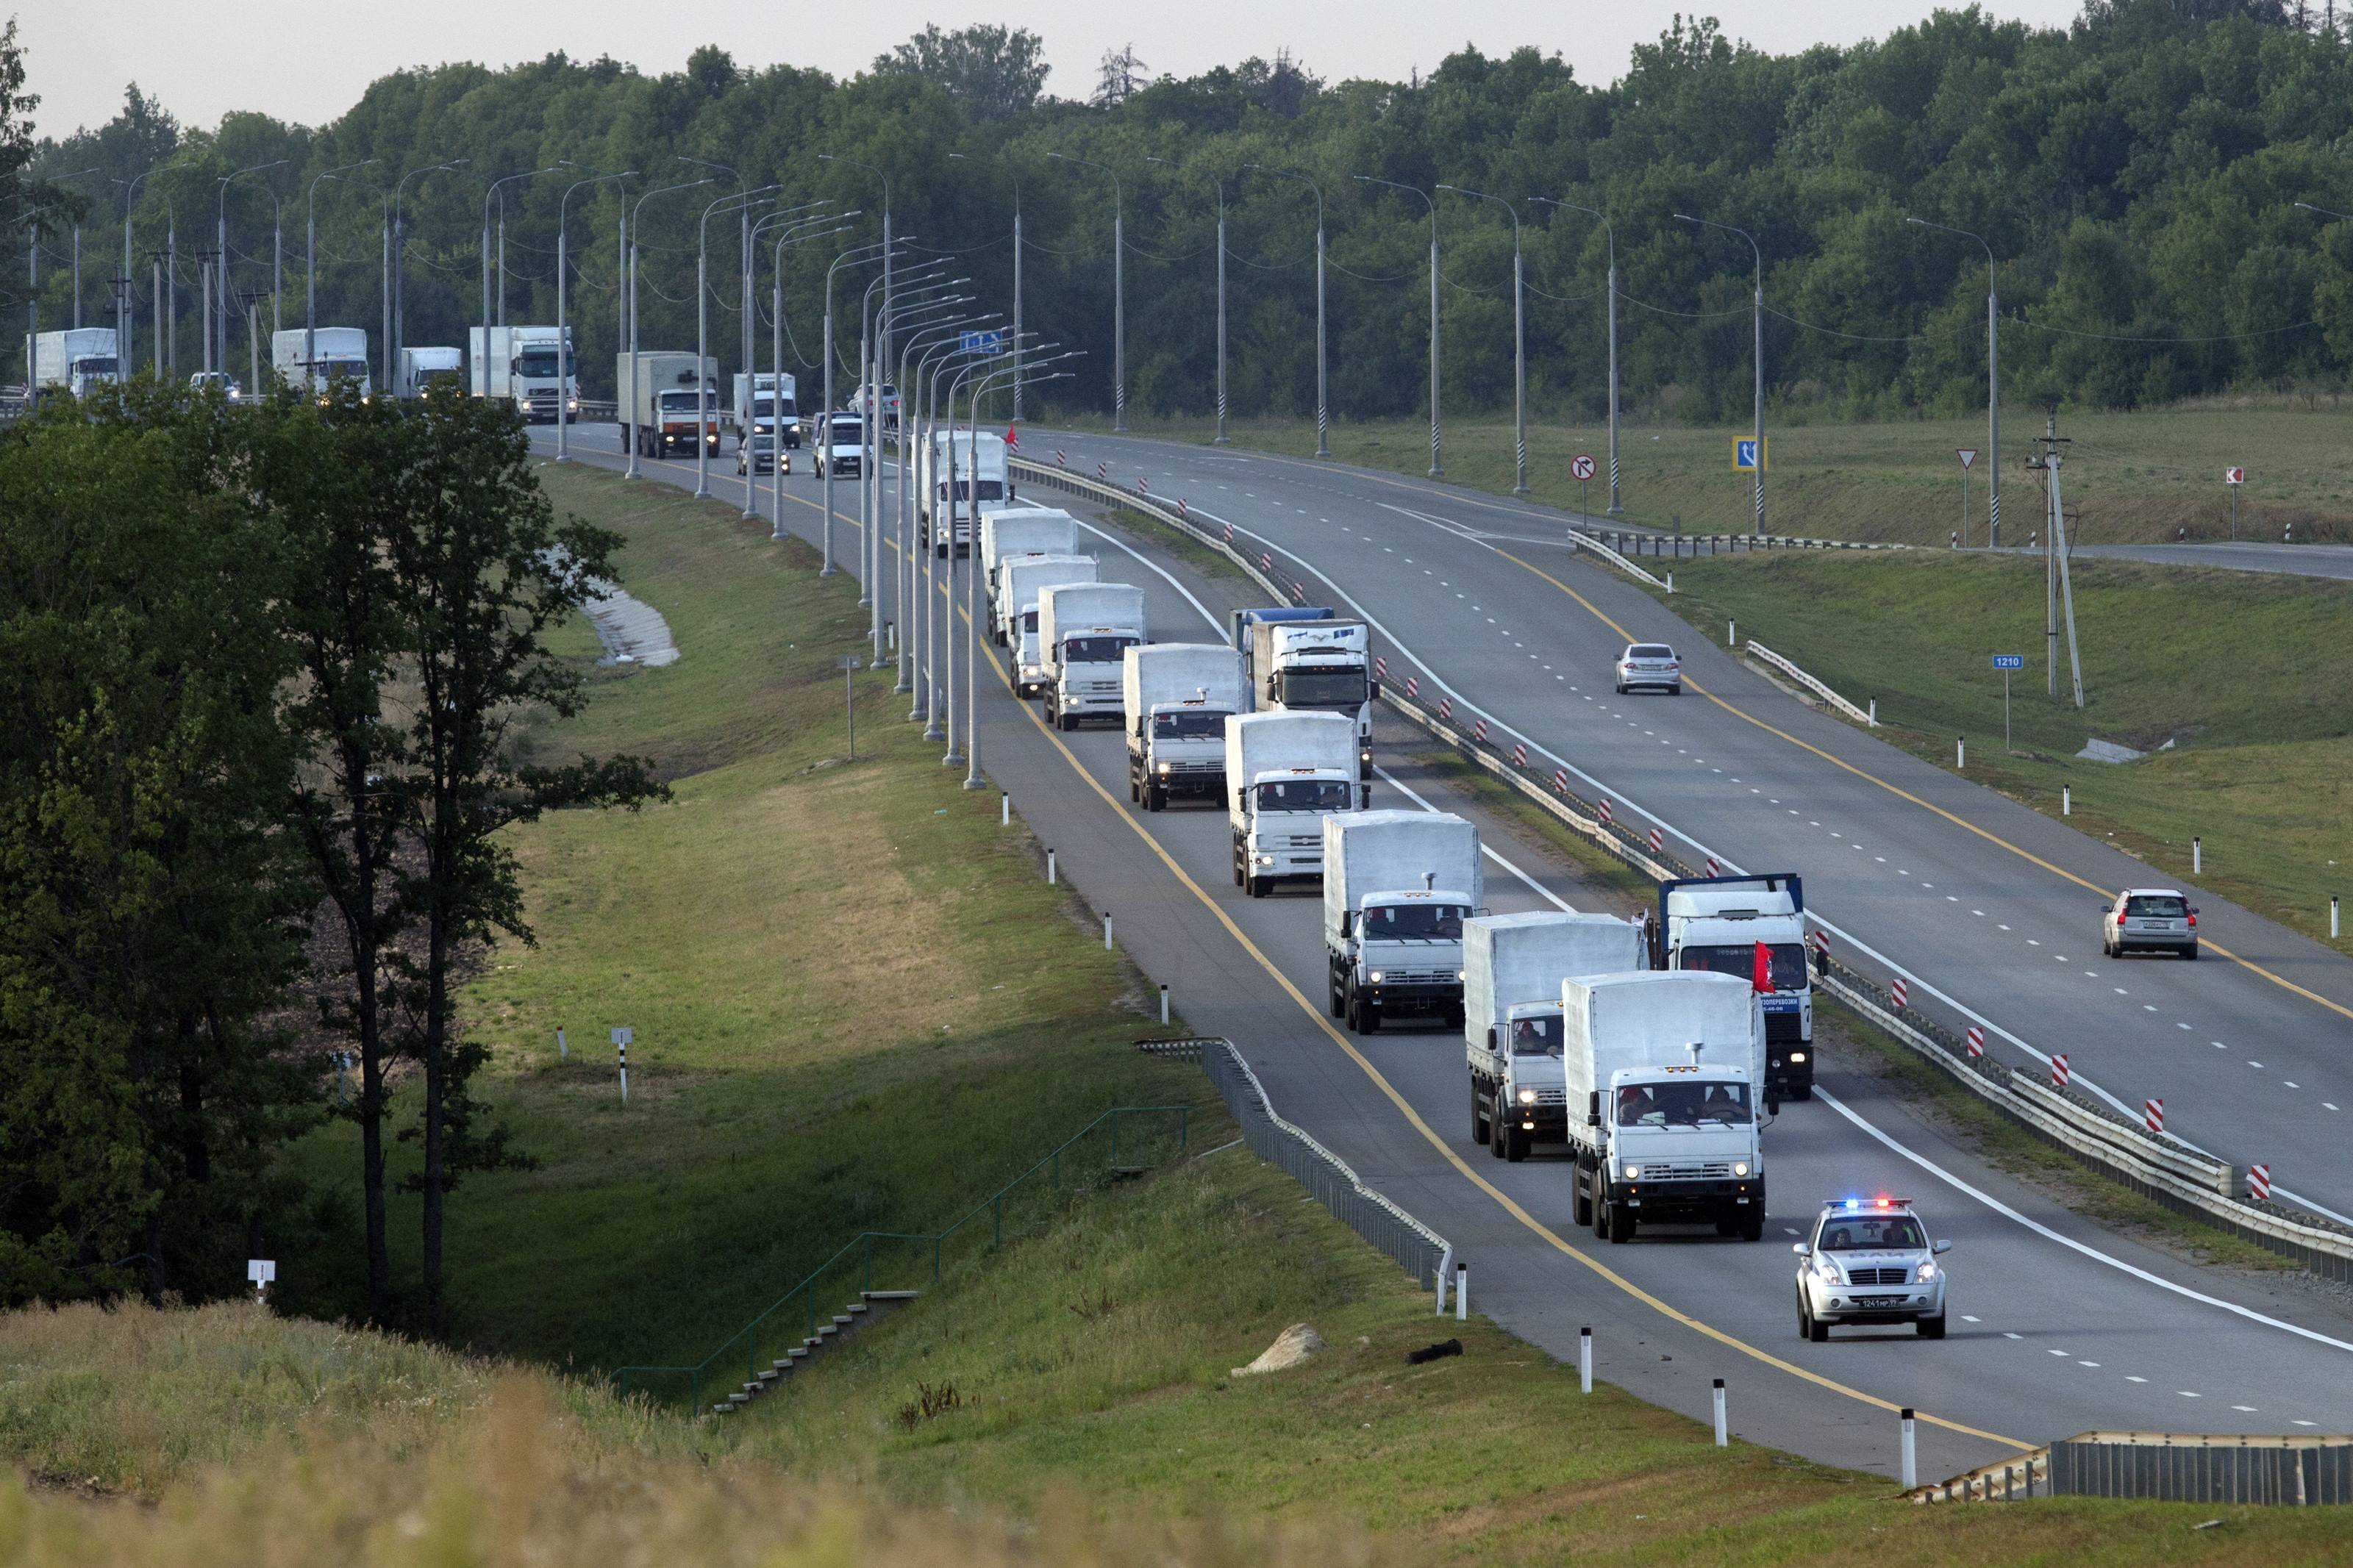 A convoy of white trucks carrying humanitarian aid passes along the main road M4 (Don highway) Voronezh region, Russia, Tuesday. The Russian trucks carrying aid intended for rebel-held eastern Ukraine were parked Wednesday in the southern city of Voronezh as doubts grew over the convoy's final route.